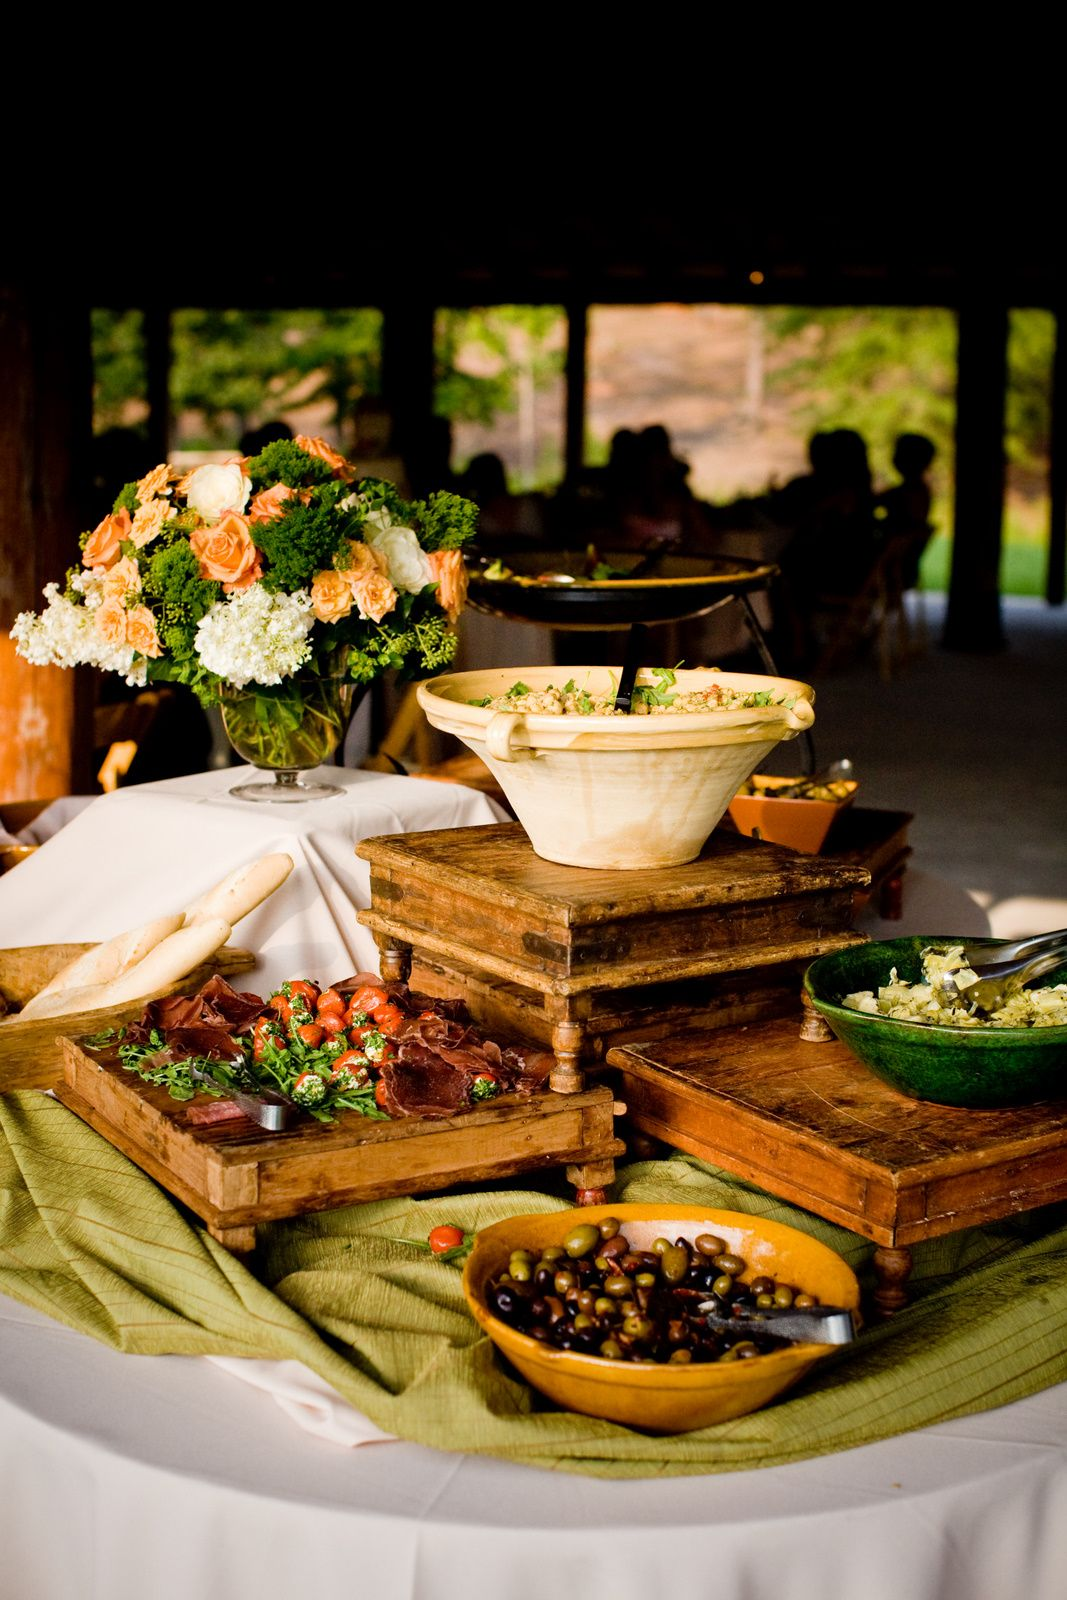 An Antipasti Station For An Early September Gloriosa At